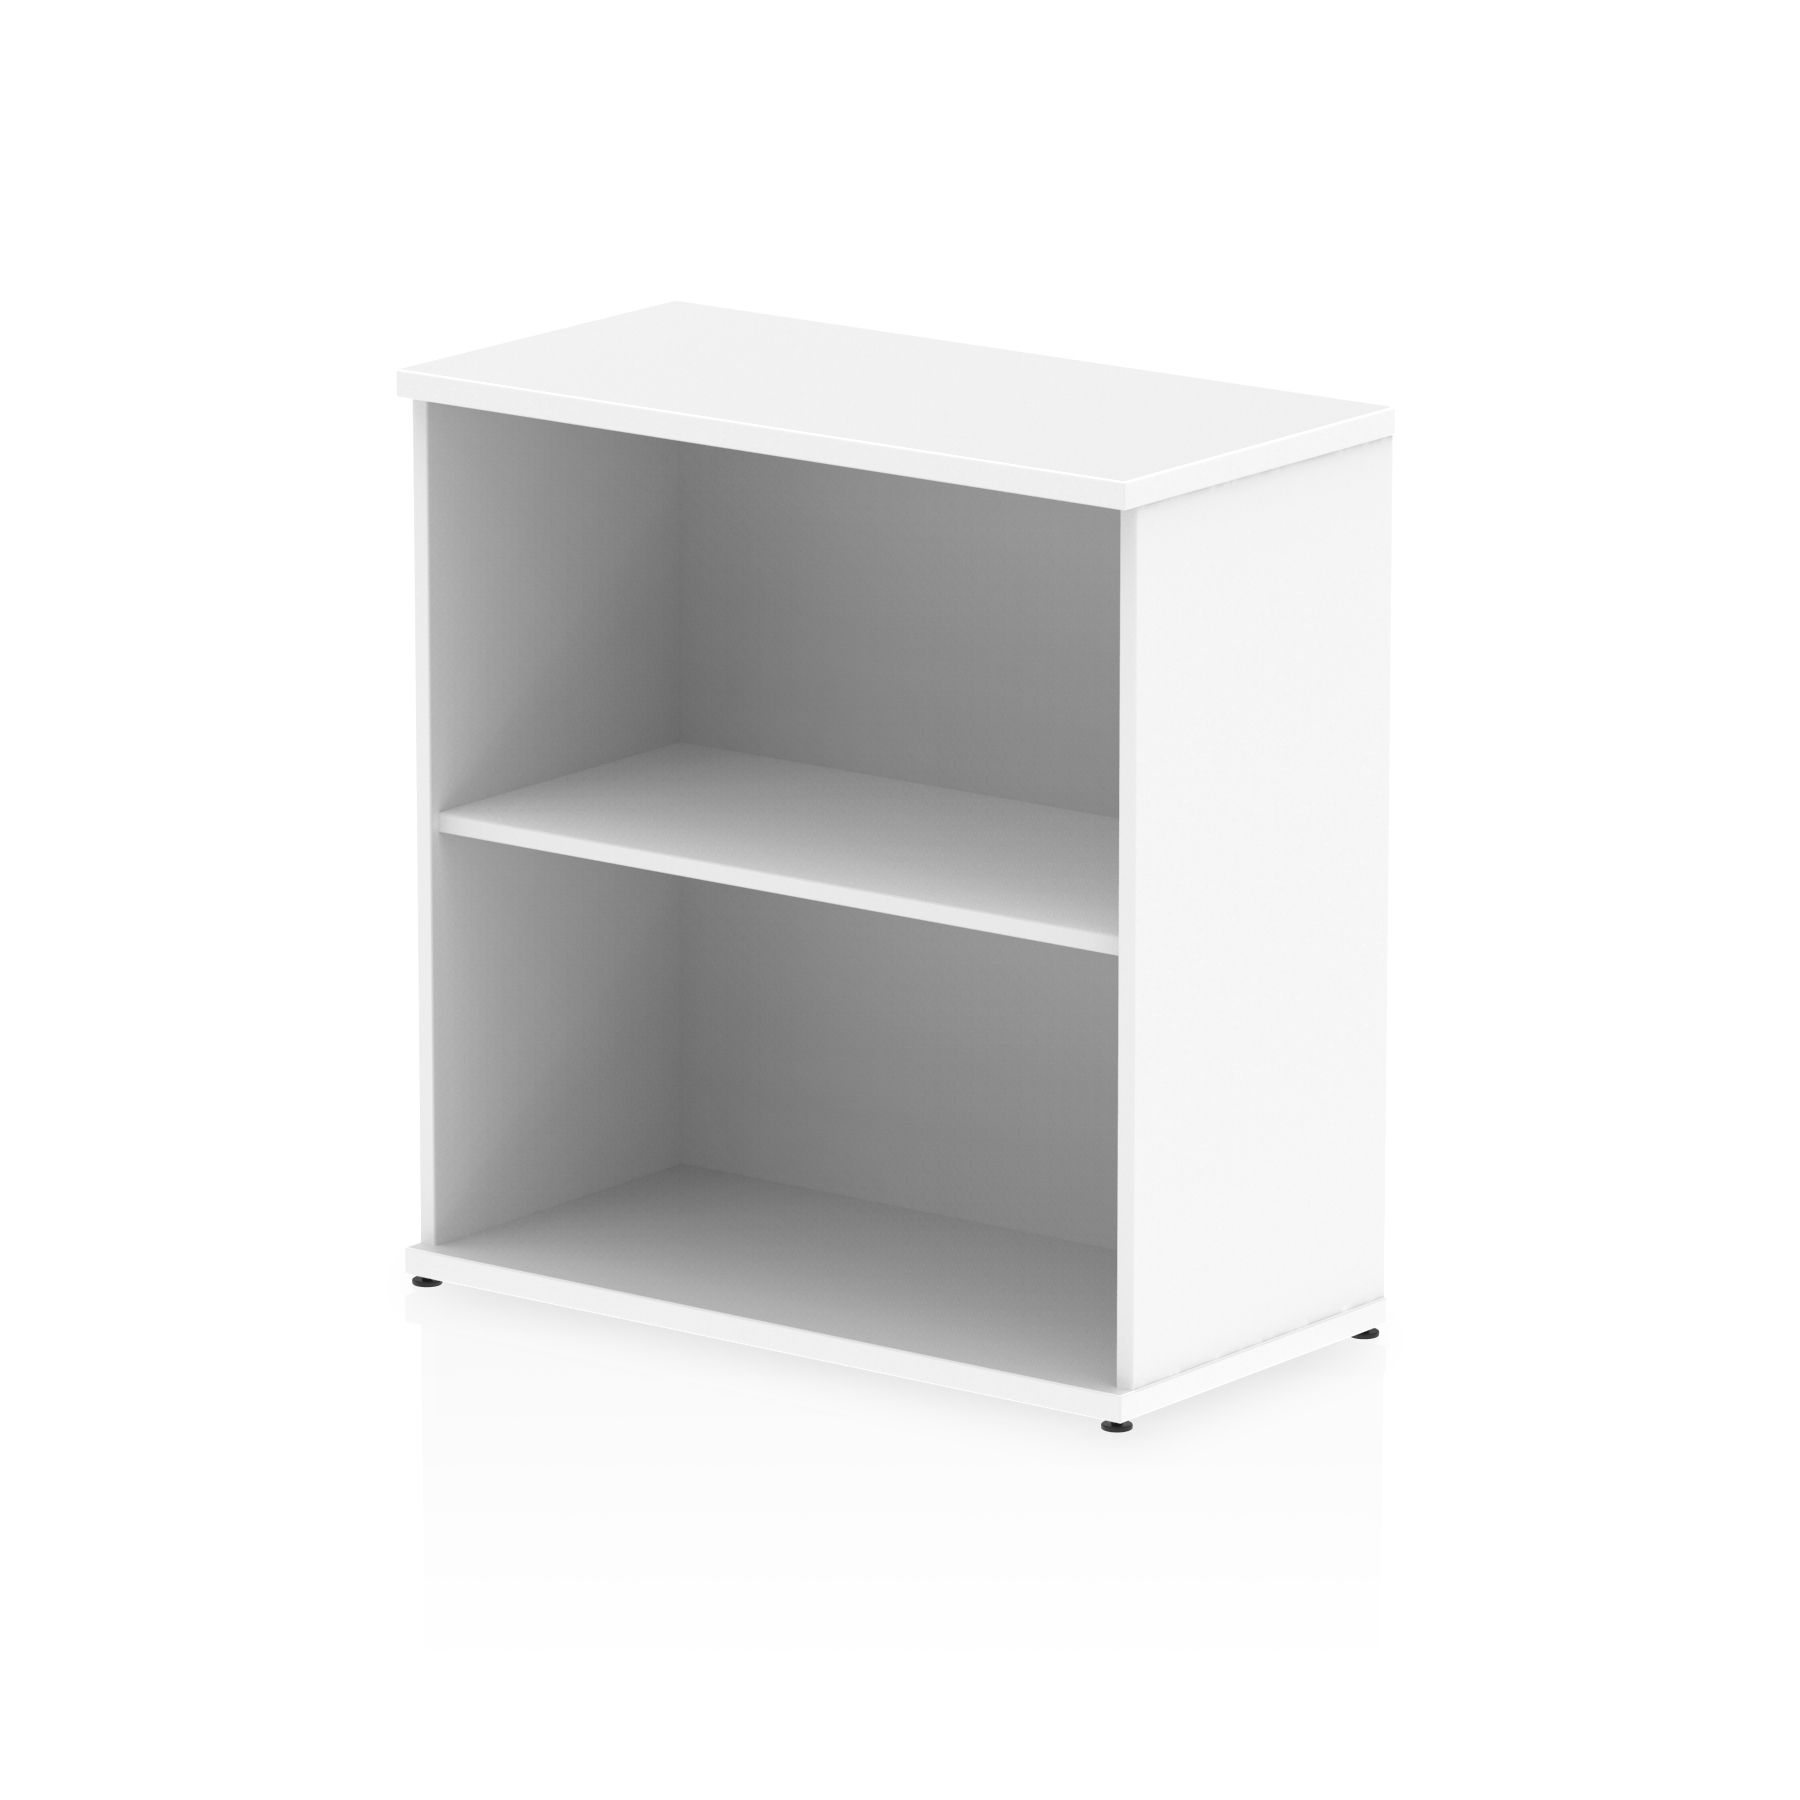 Up To 1200mm High Impulse 800mm Bookcase White I000169